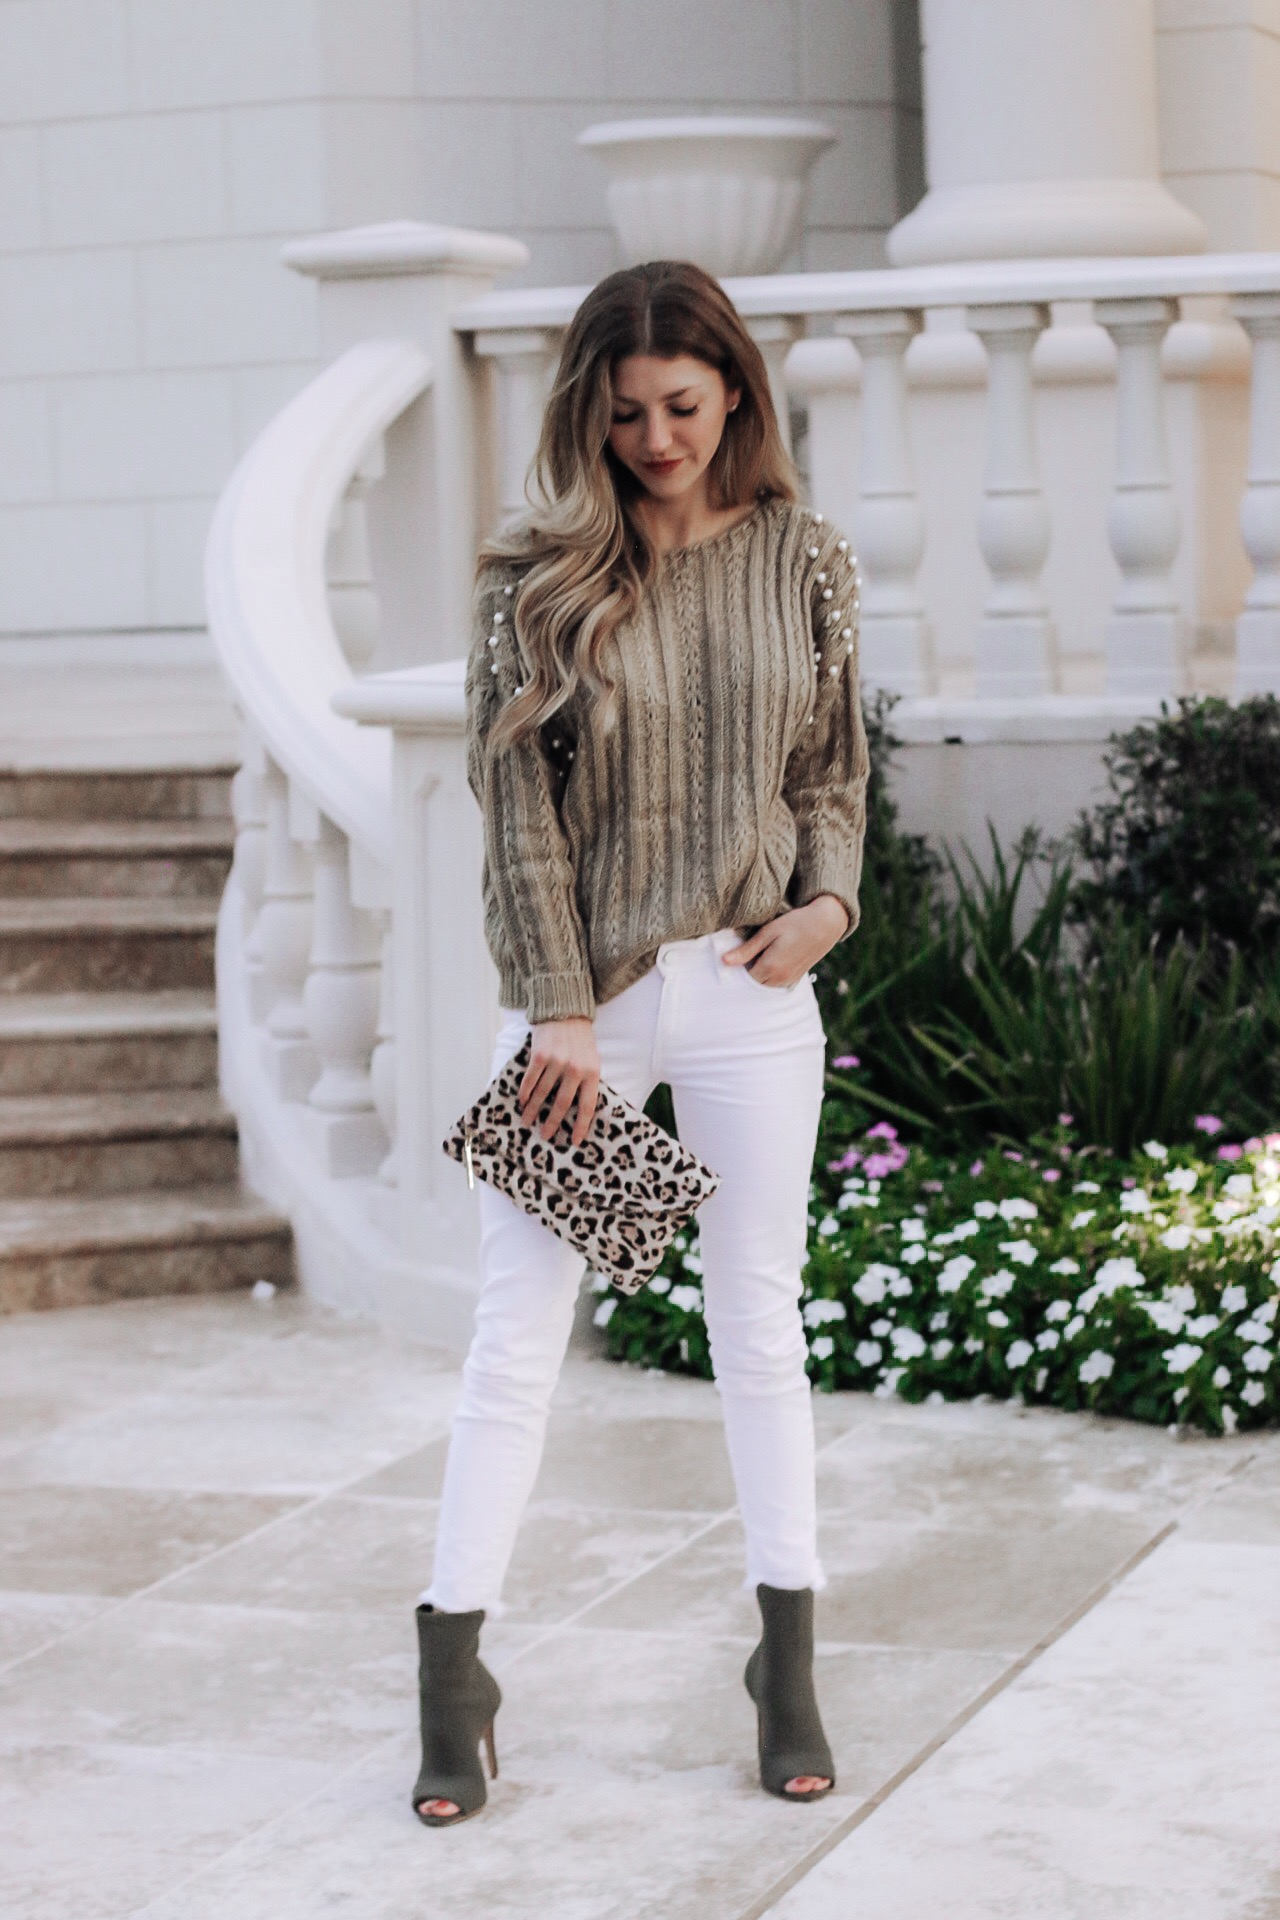 Wearing Shein Oversized pearl sweater and green Macy's ankle bootoes